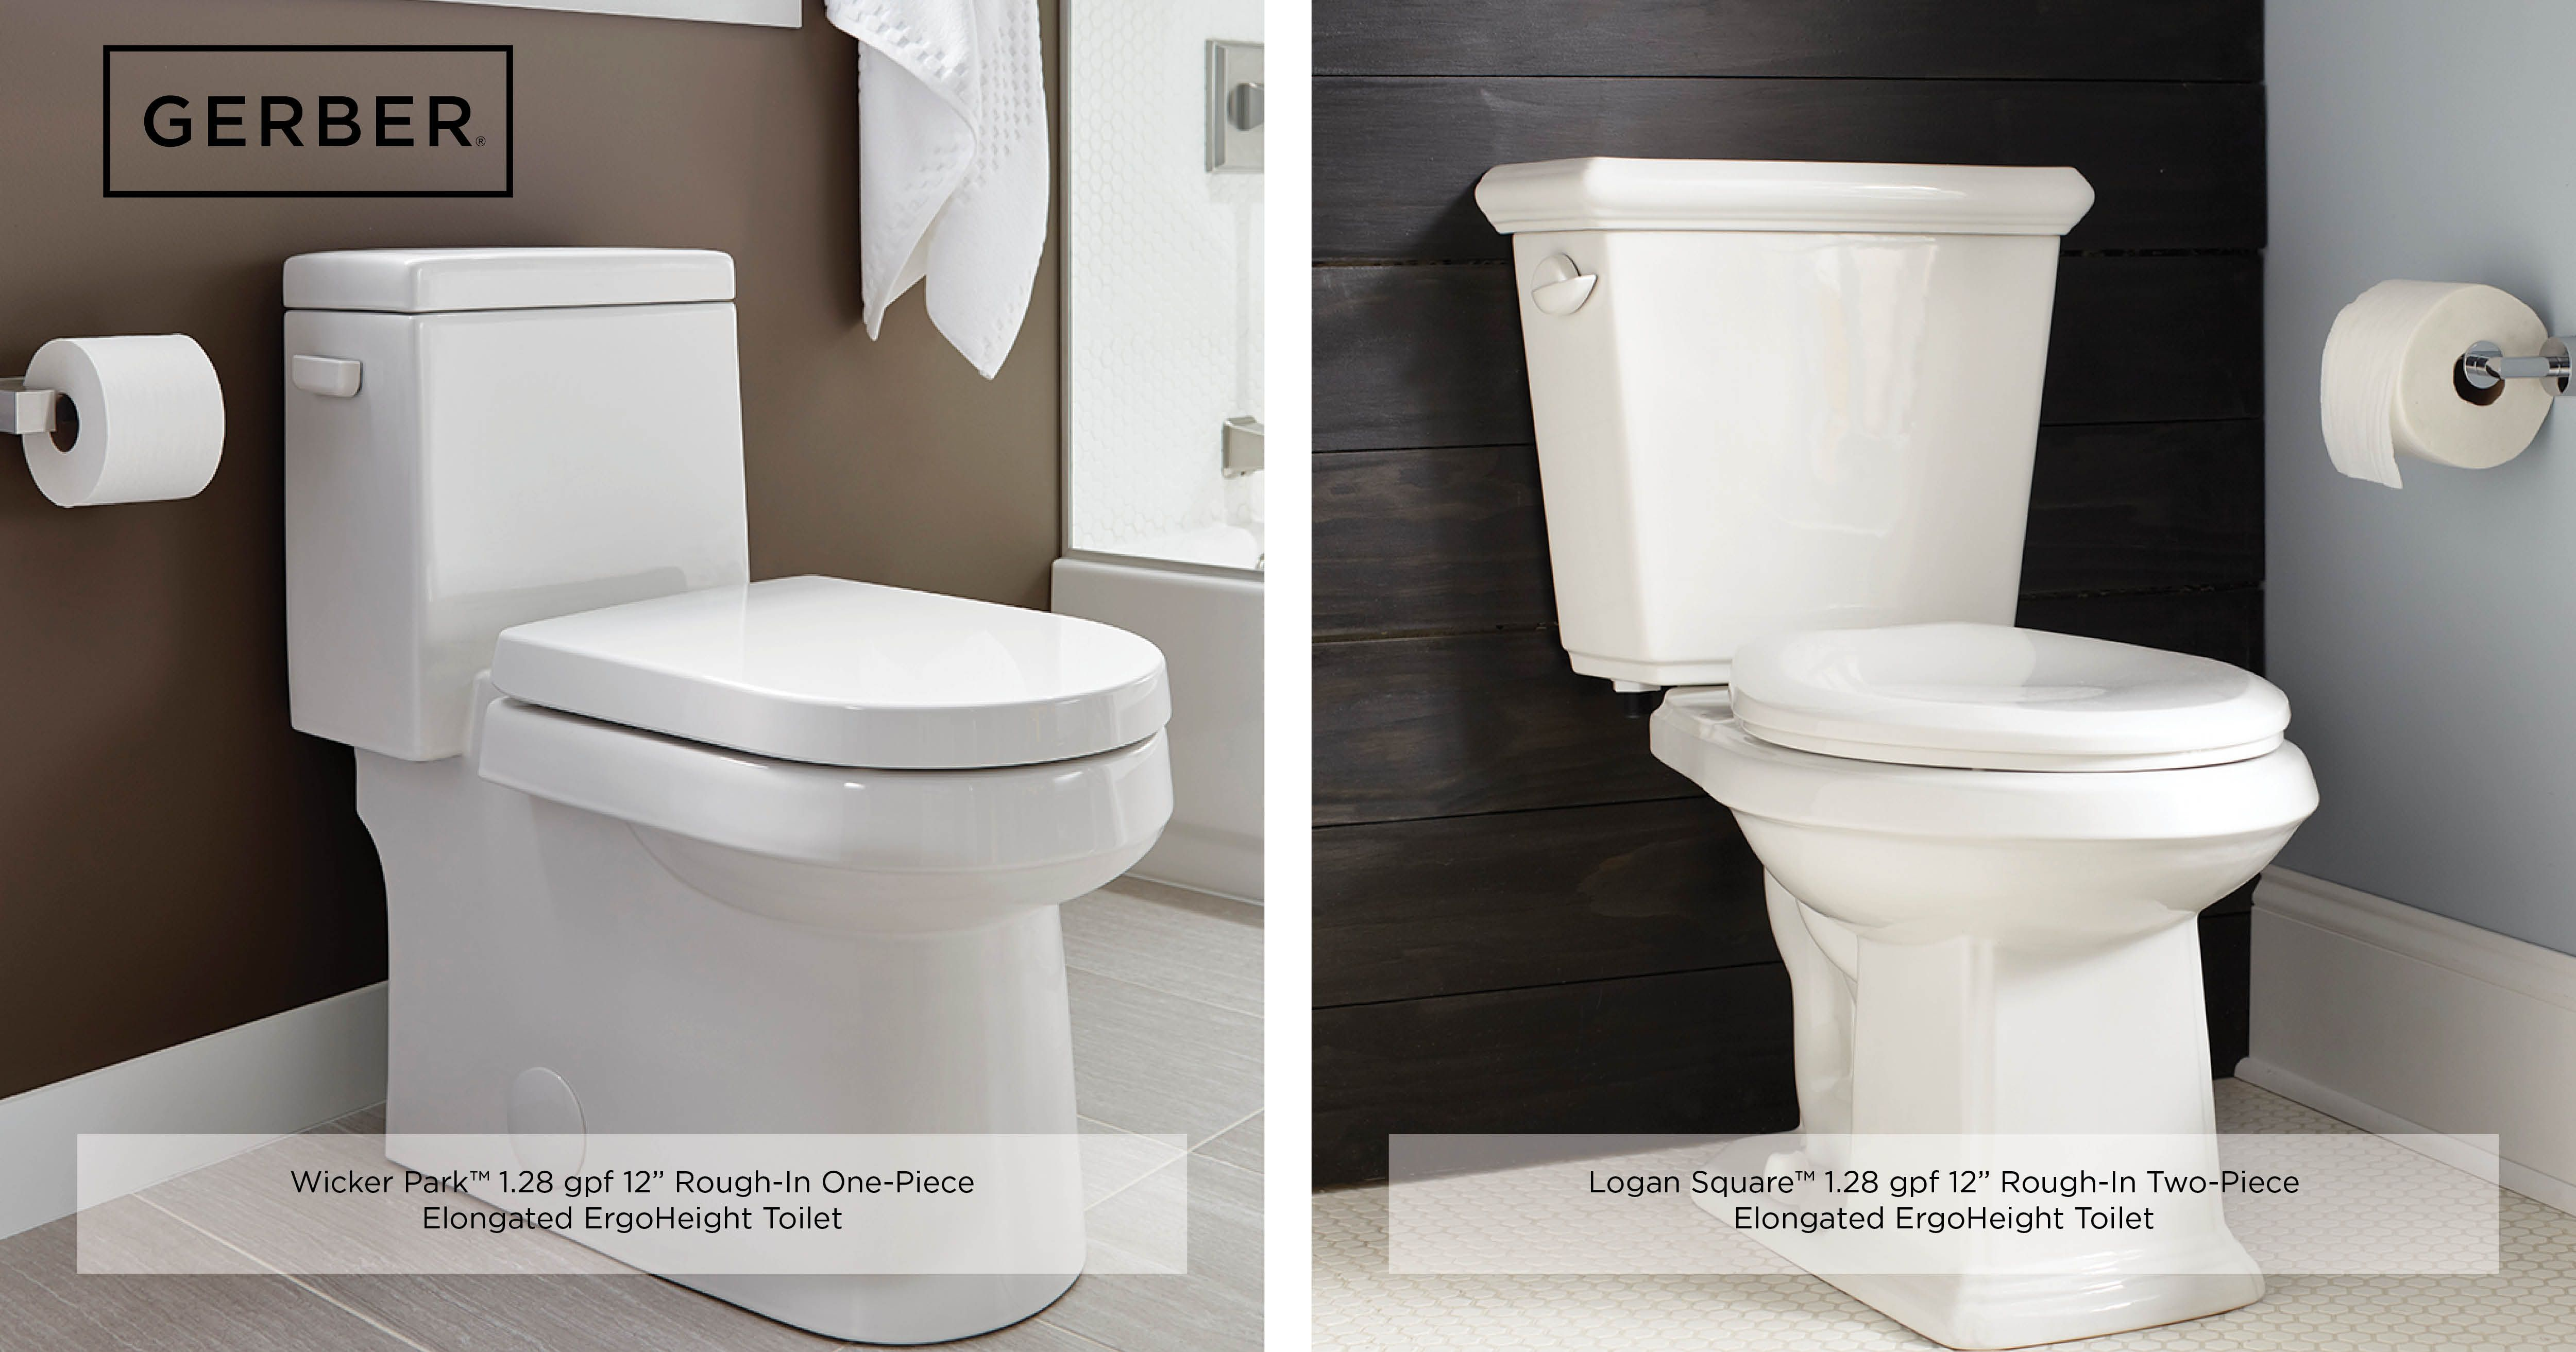 Find The Loo That S Right For You One Piece Toilets With Concealed Trapways Are Often Easier To Clean And Have A Sleek Toilet Bidet Bathroom One Piece Toilets